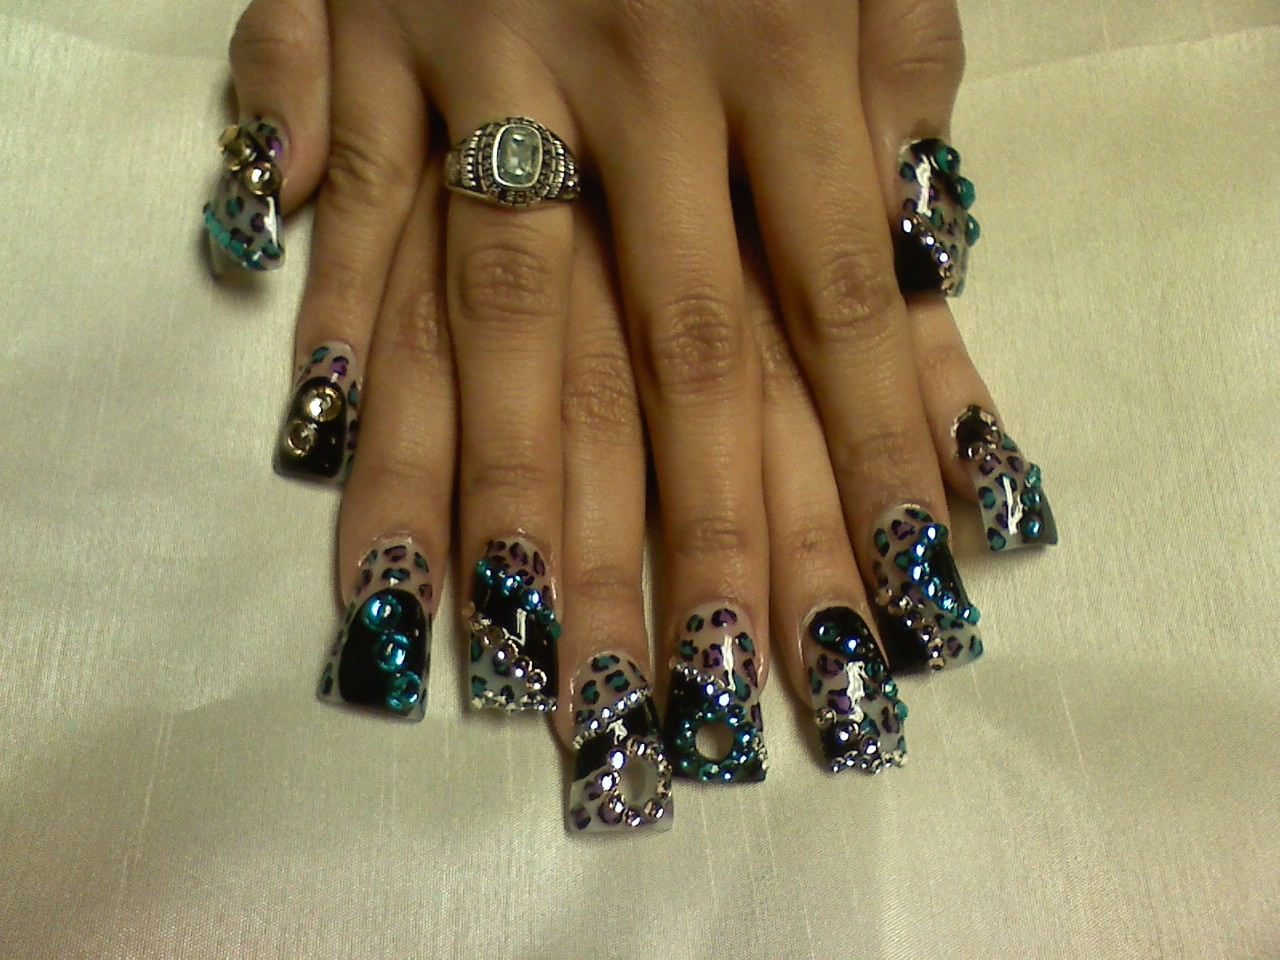 10 Wild And Crazy Nail Designs Images